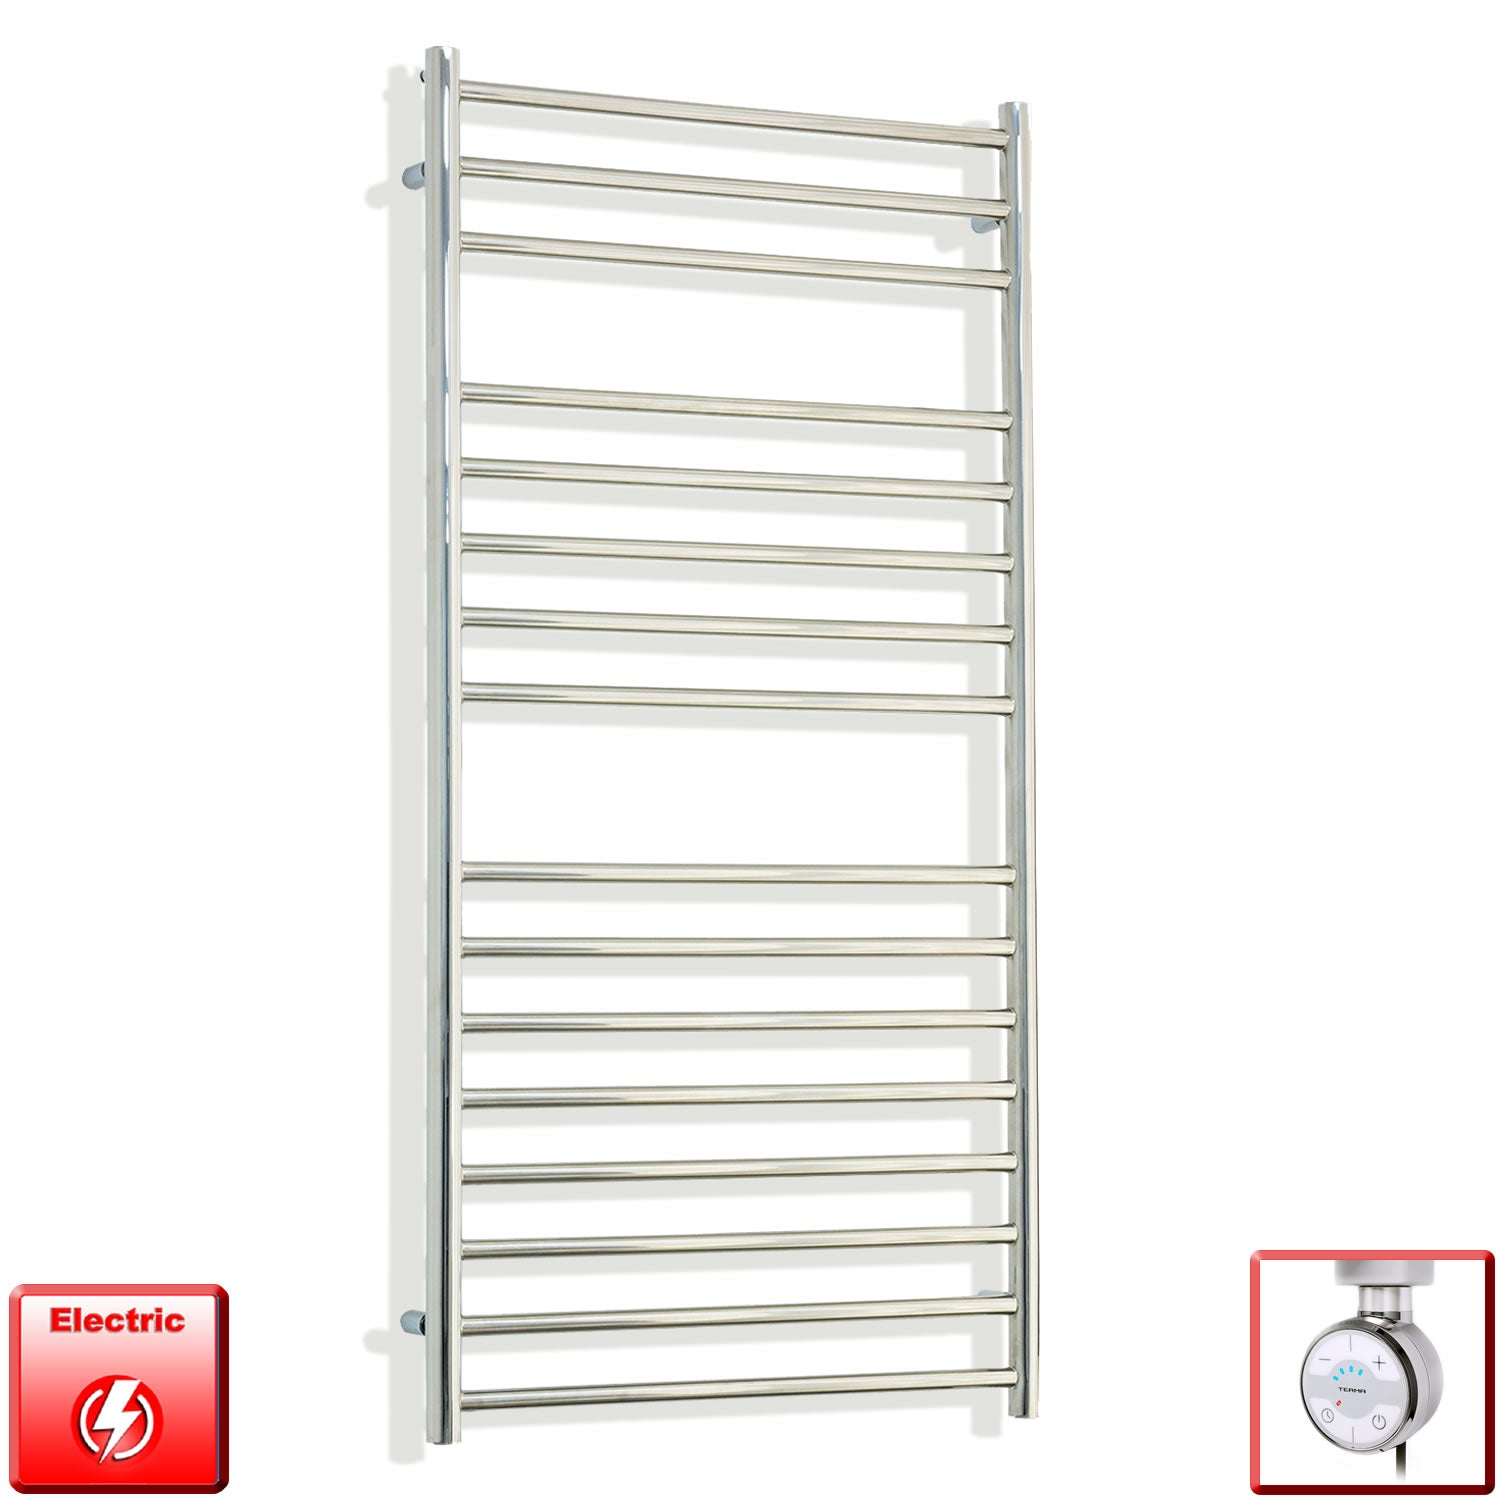 1200 mm High 600 mm Wide Pre-Filled Electric Stainless Steel Heated Towel Rail Radiator moa thermostatic heating element